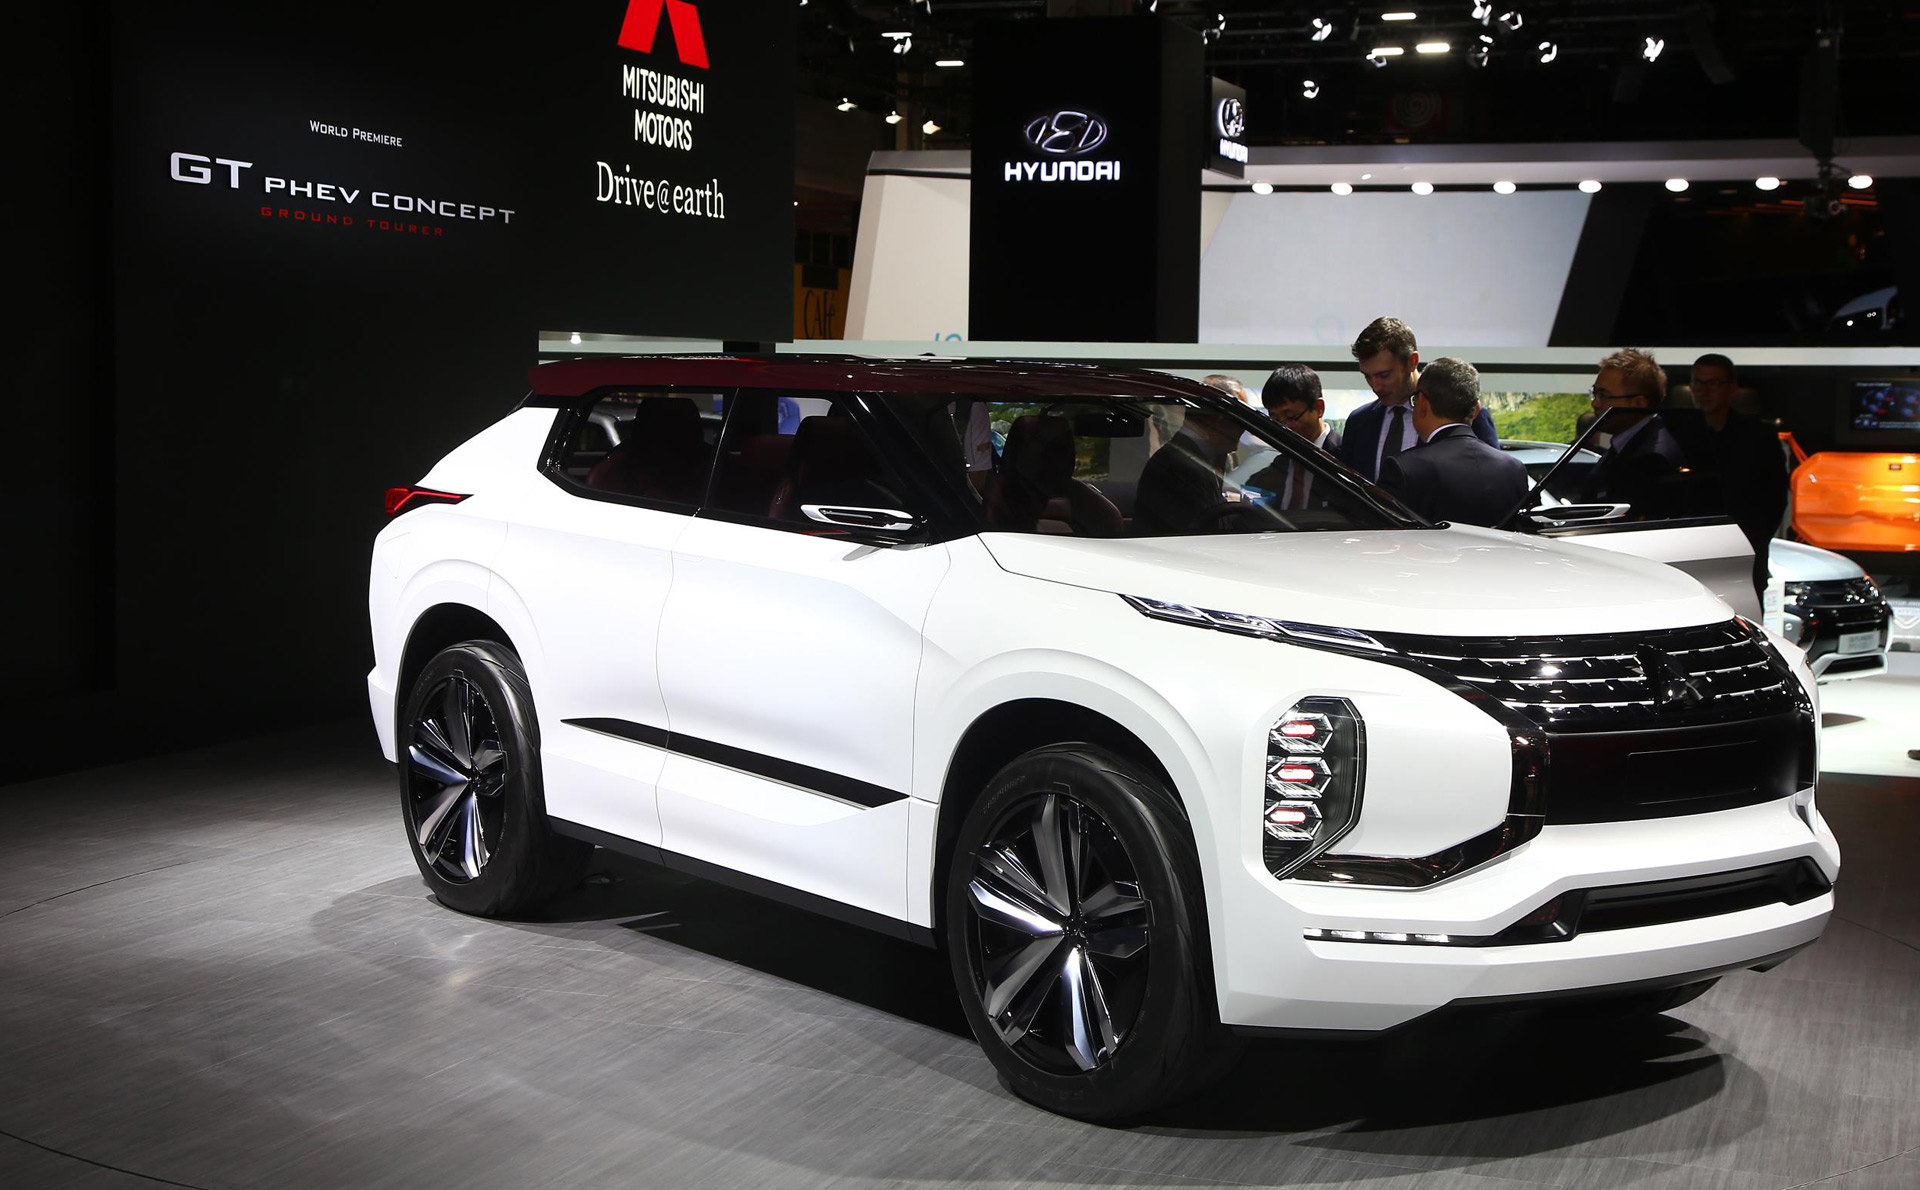 Mitsubishi Gt Phev Concept Previews Next Gen Hybrid Tech Suv Design